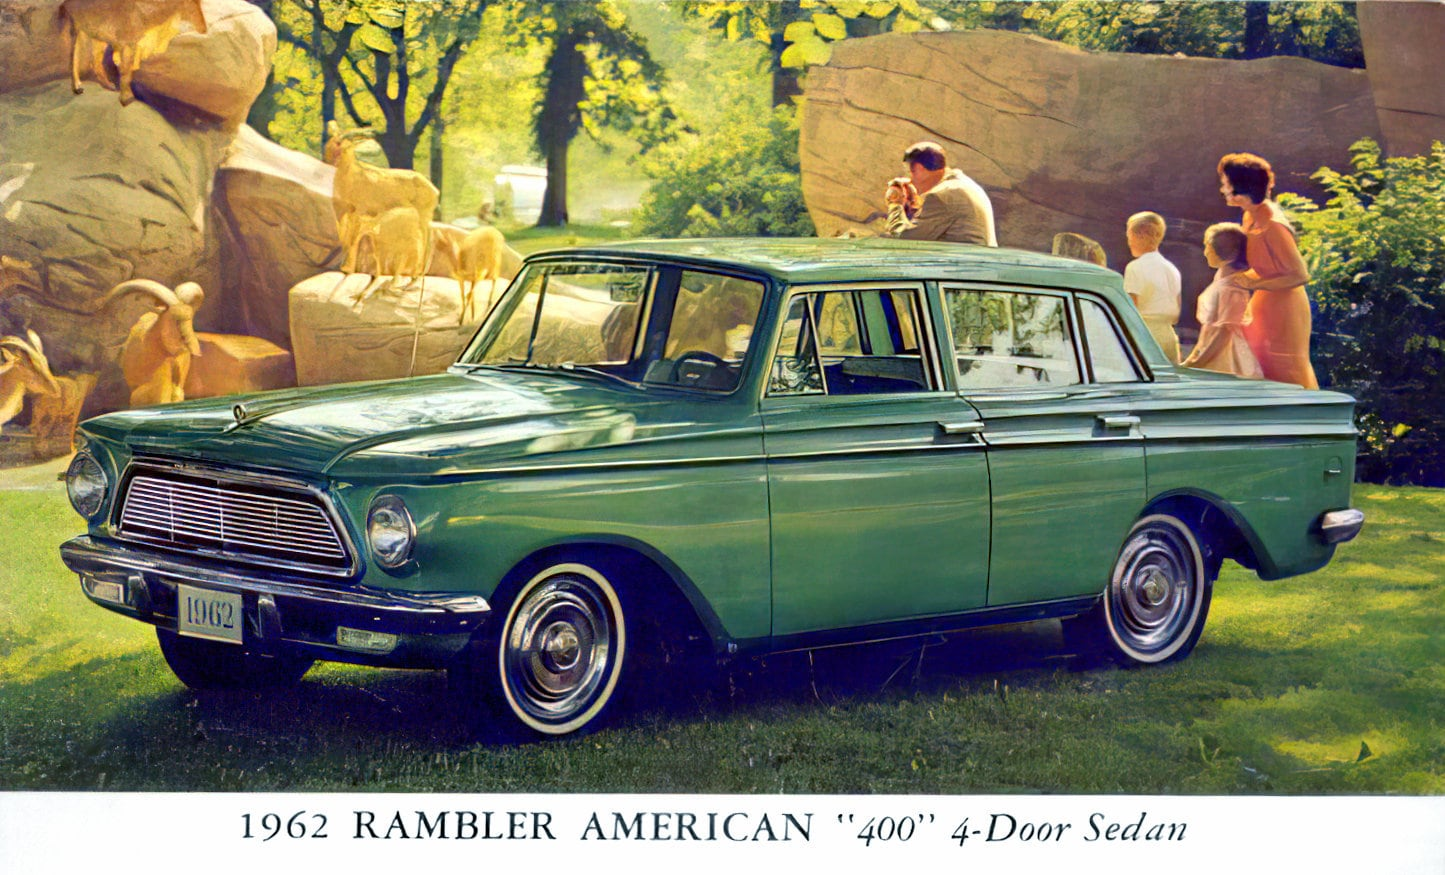 1962 Rambler American 400 4-door sedan - Classic cars